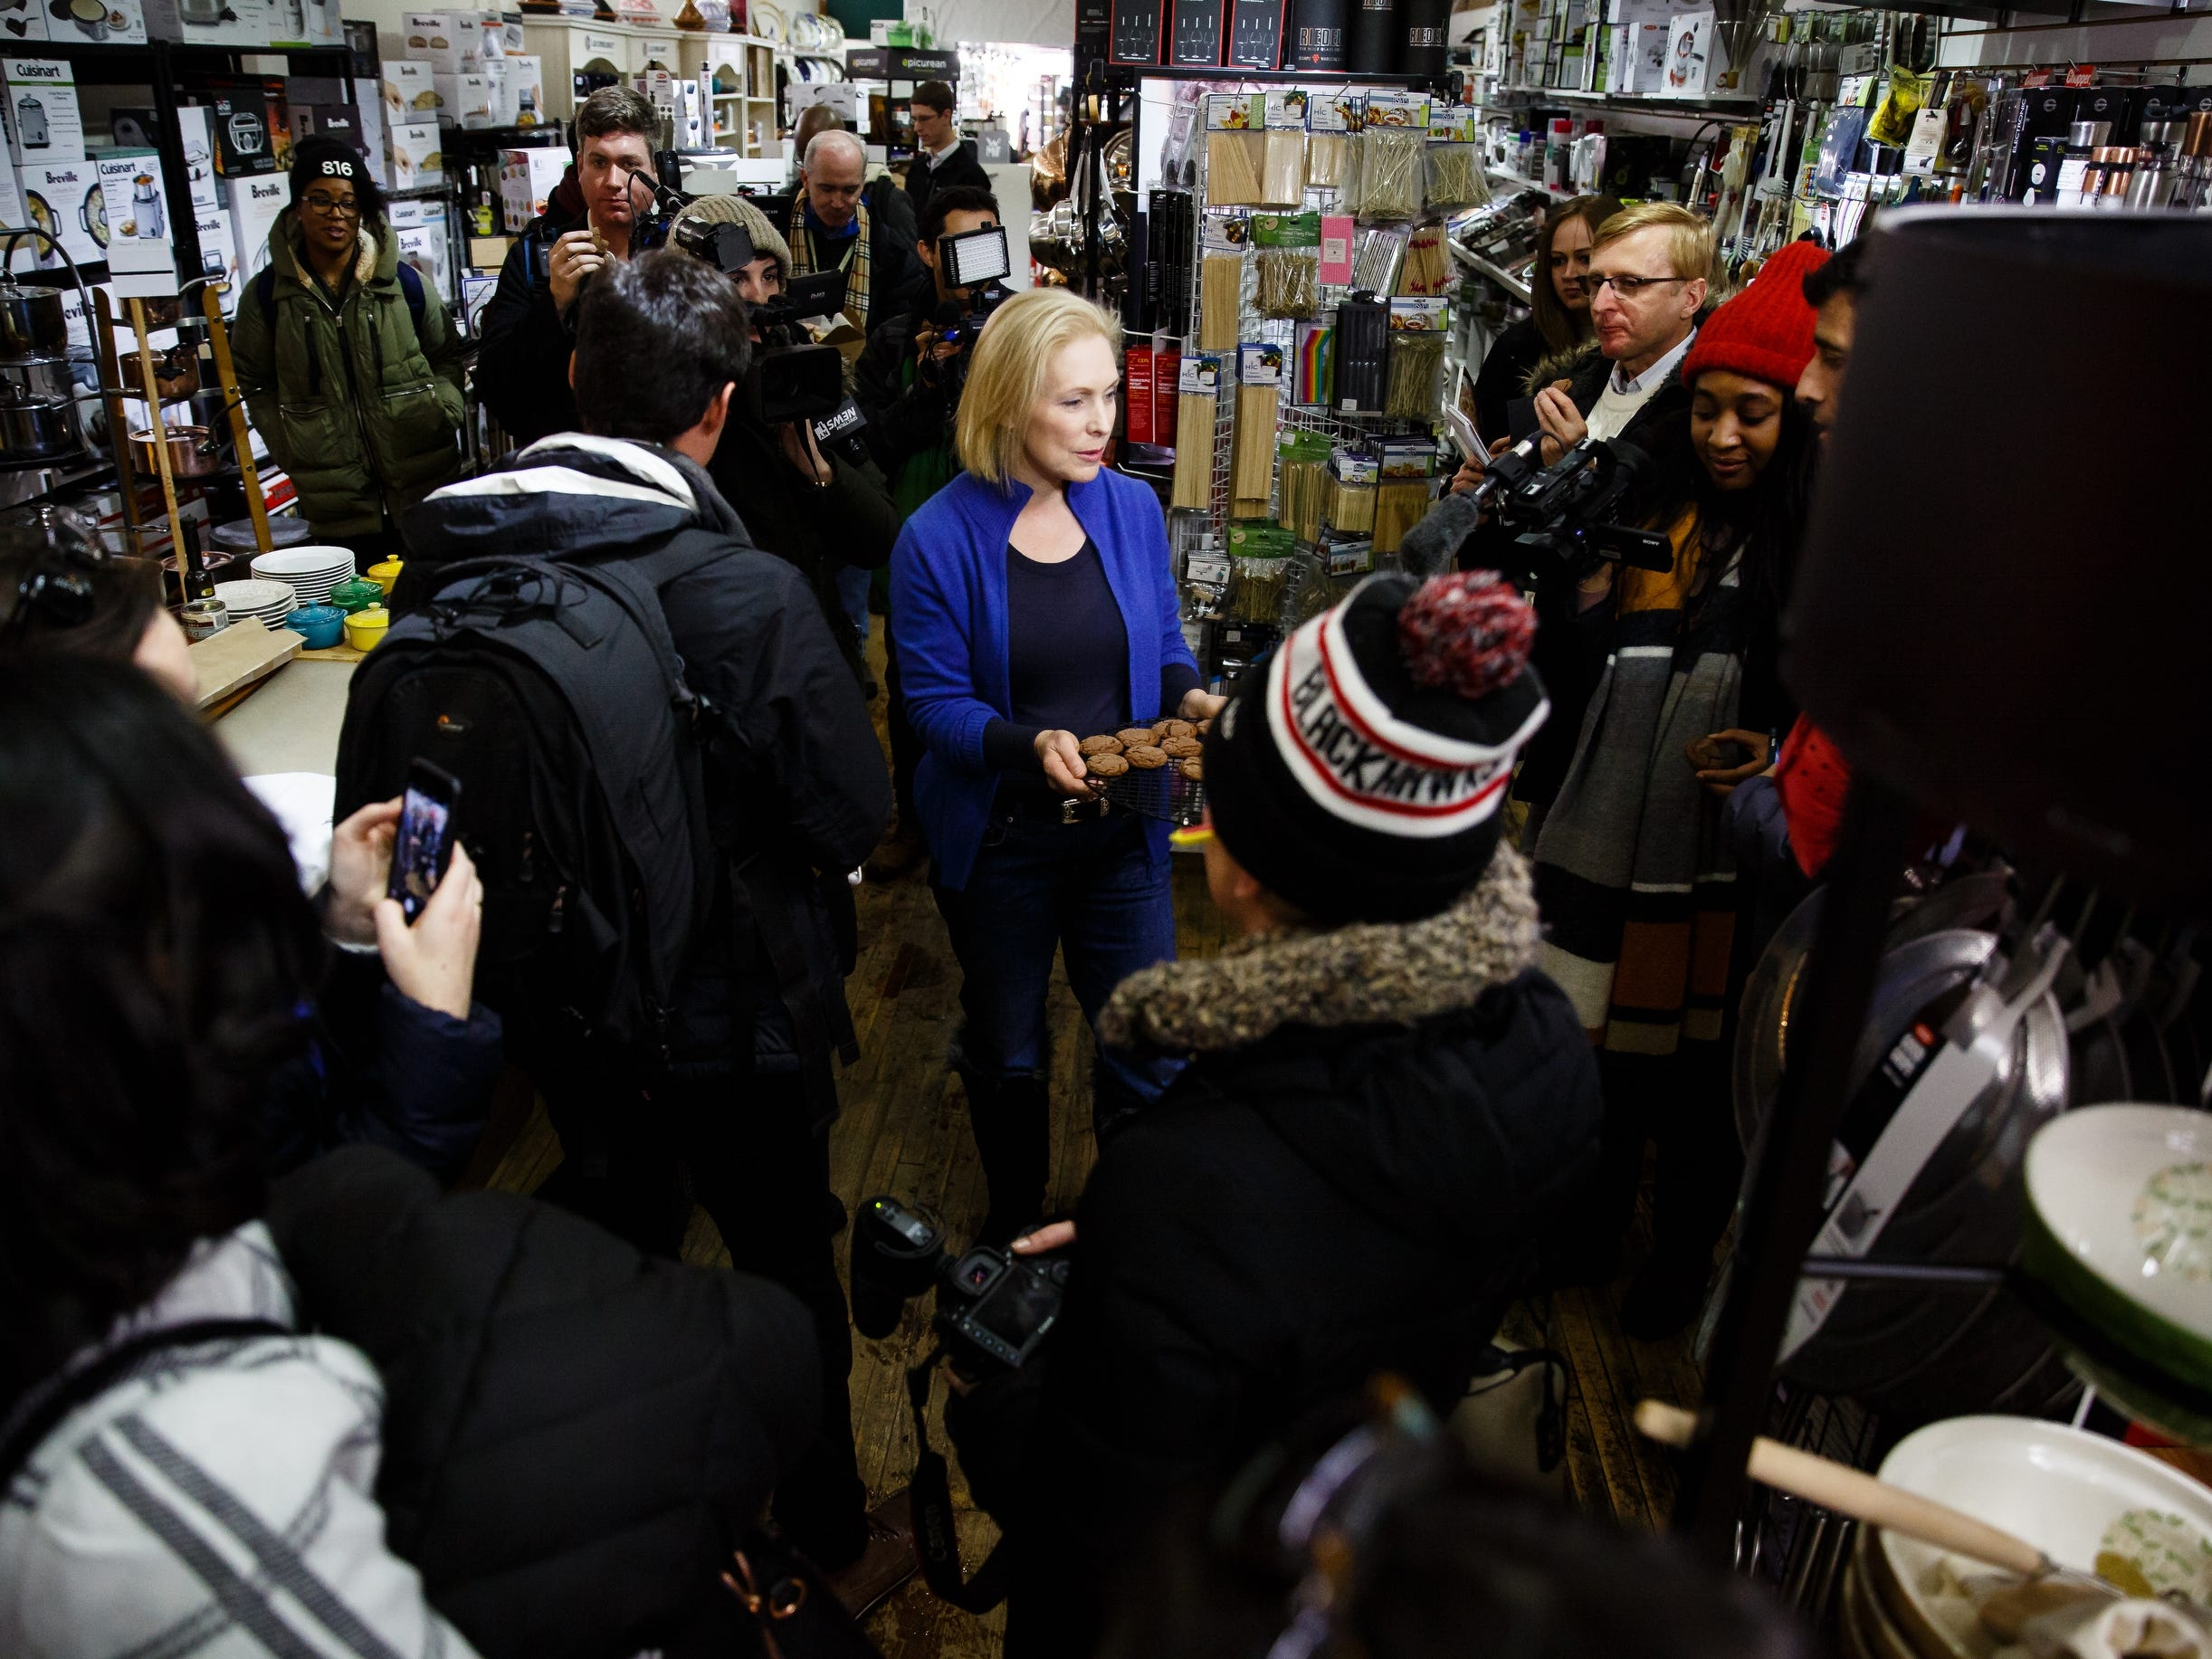 After baking cookies at Kitchen Collage, Sen. Kirsten Gillibrand of New York hands a few pre-made ones out to members of the press following her walking tour of the East Village on Saturday, Jan. 19, 2019, in Des Moines.